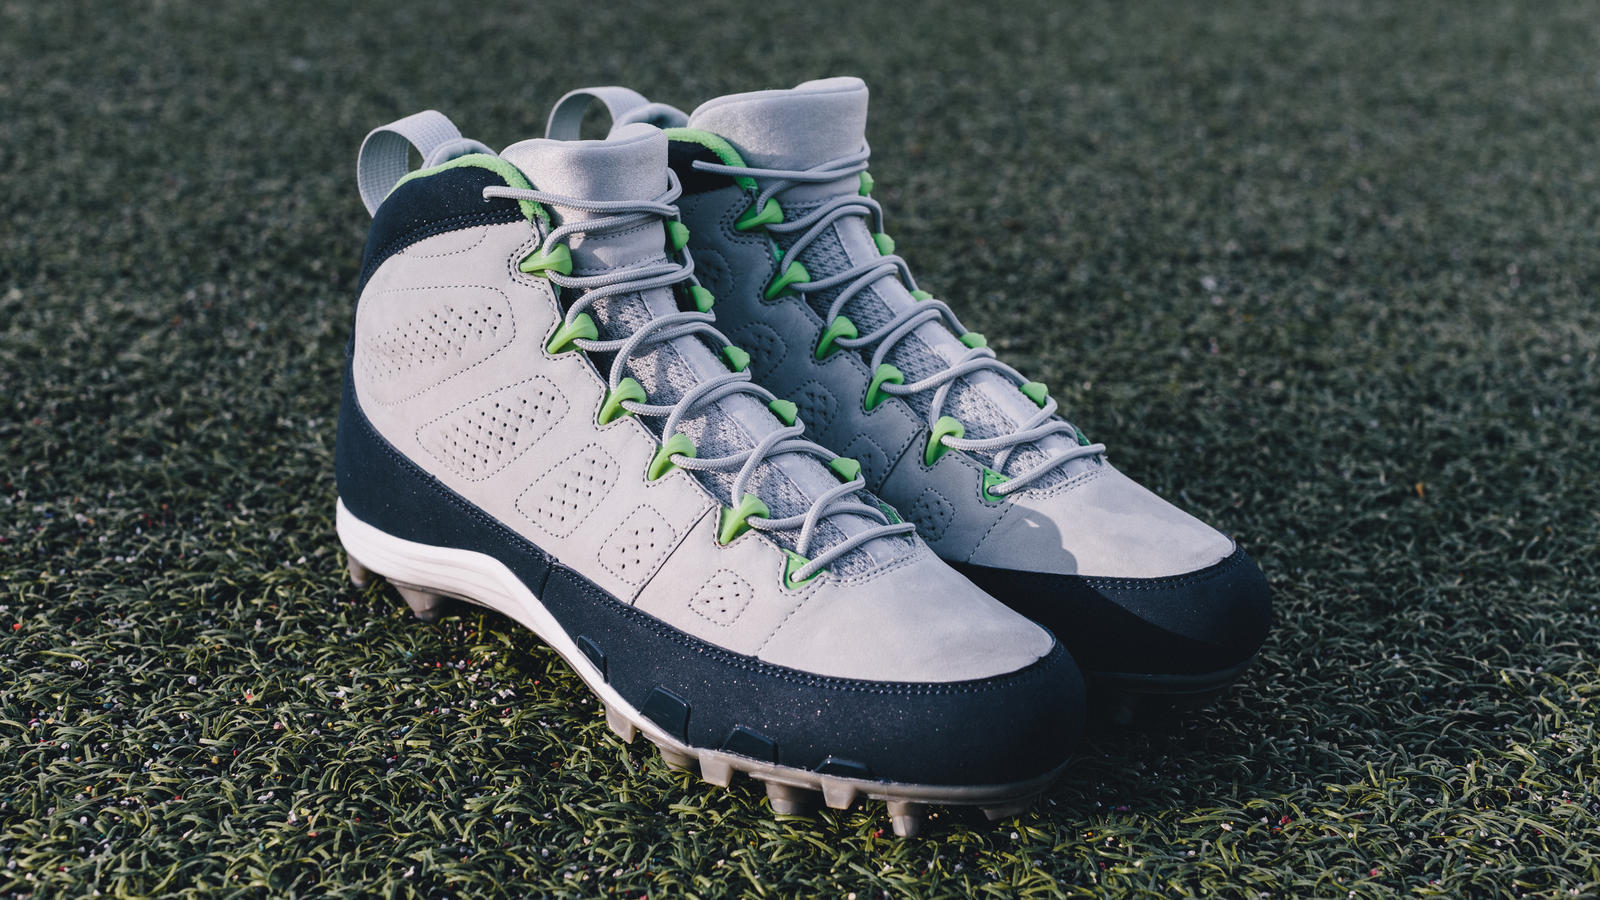 Earl Thomas Air Jordan IX PE Cleats